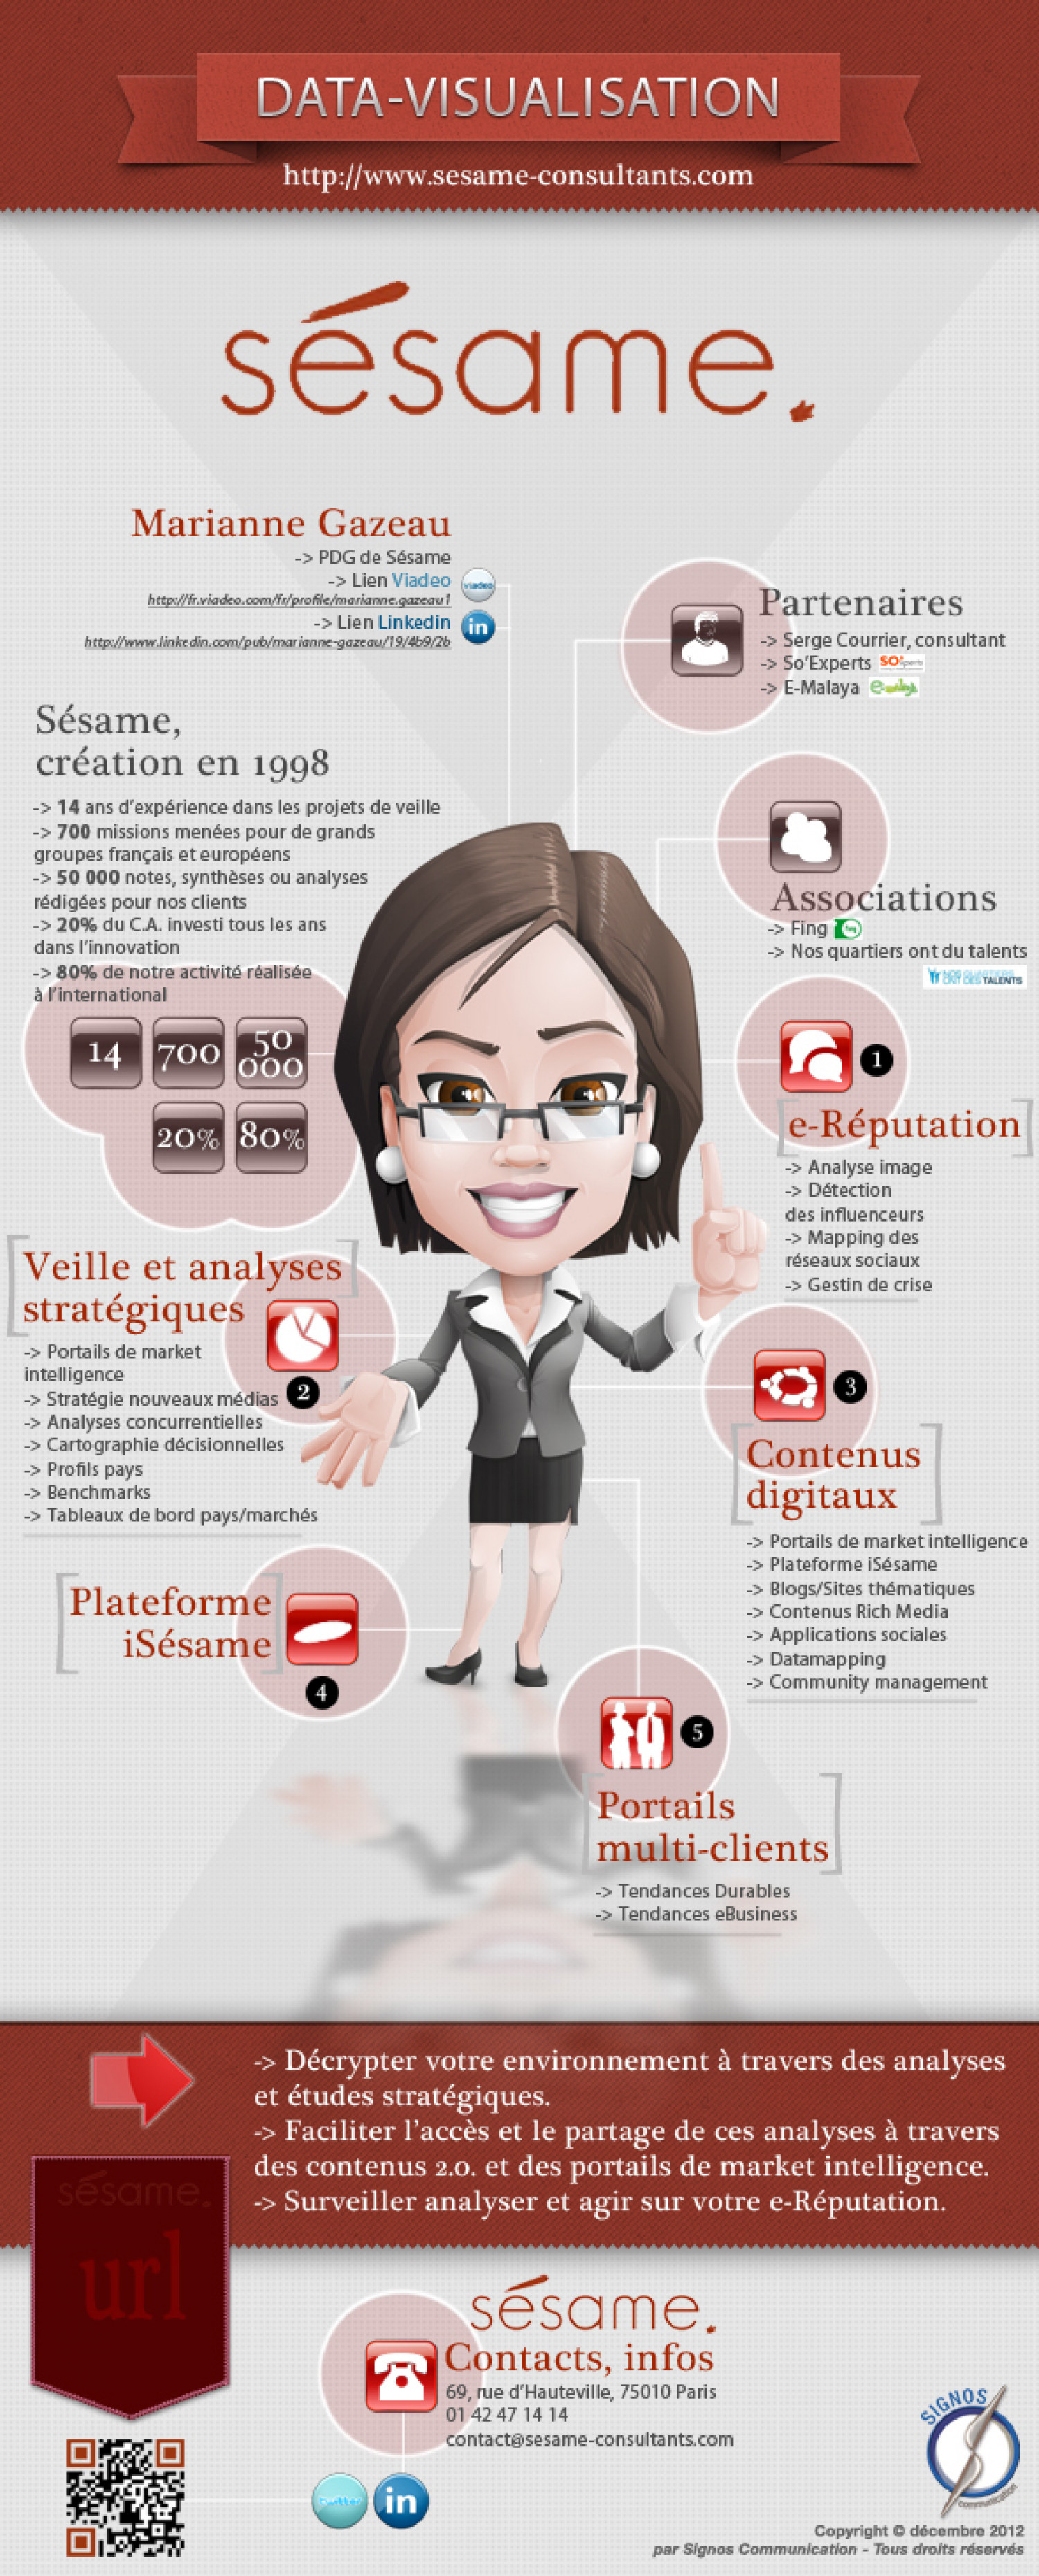 Sesame consulting (France-Paris) Infographic